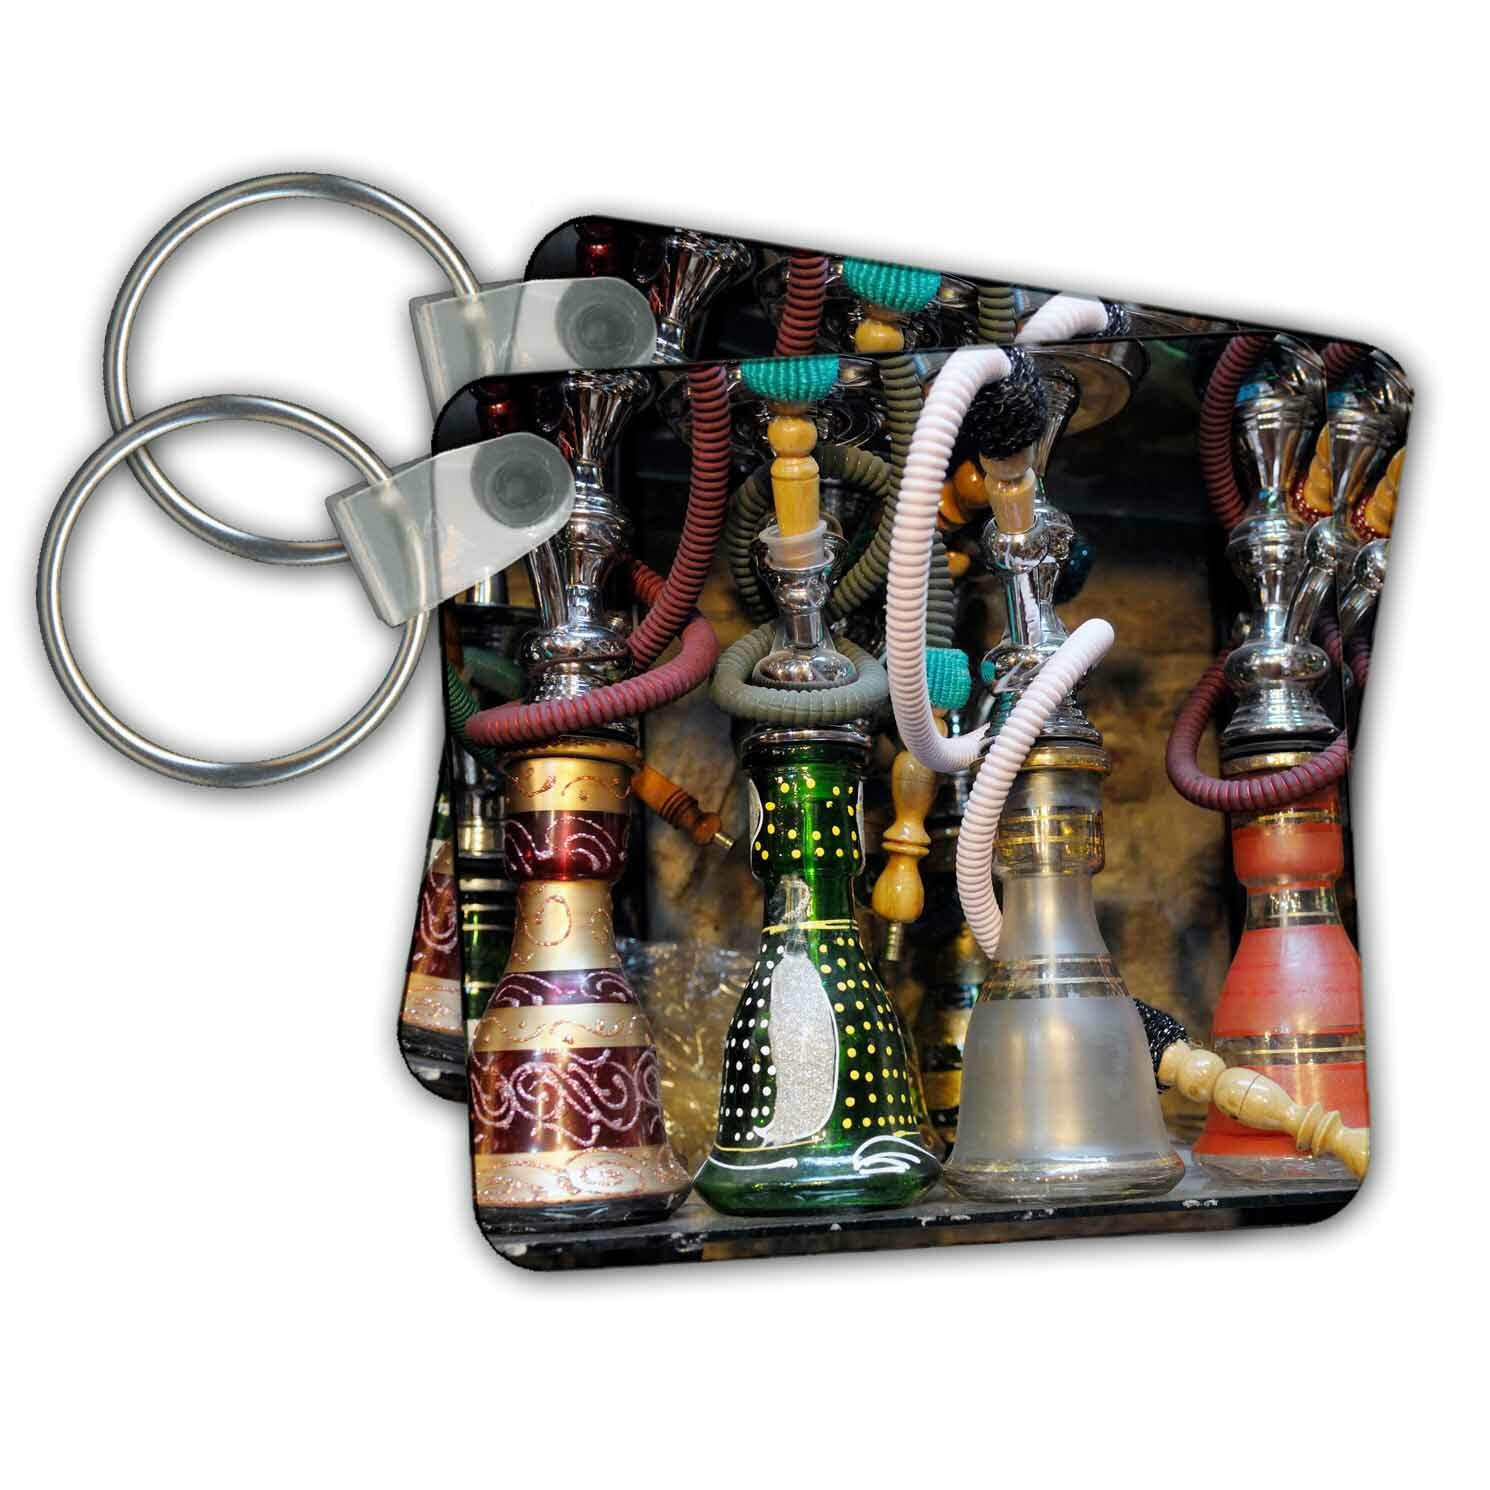 3drose Spain Andalusia Granada Moroccan Hookahs For Sale In A Small Shop Key Chain Wayfair